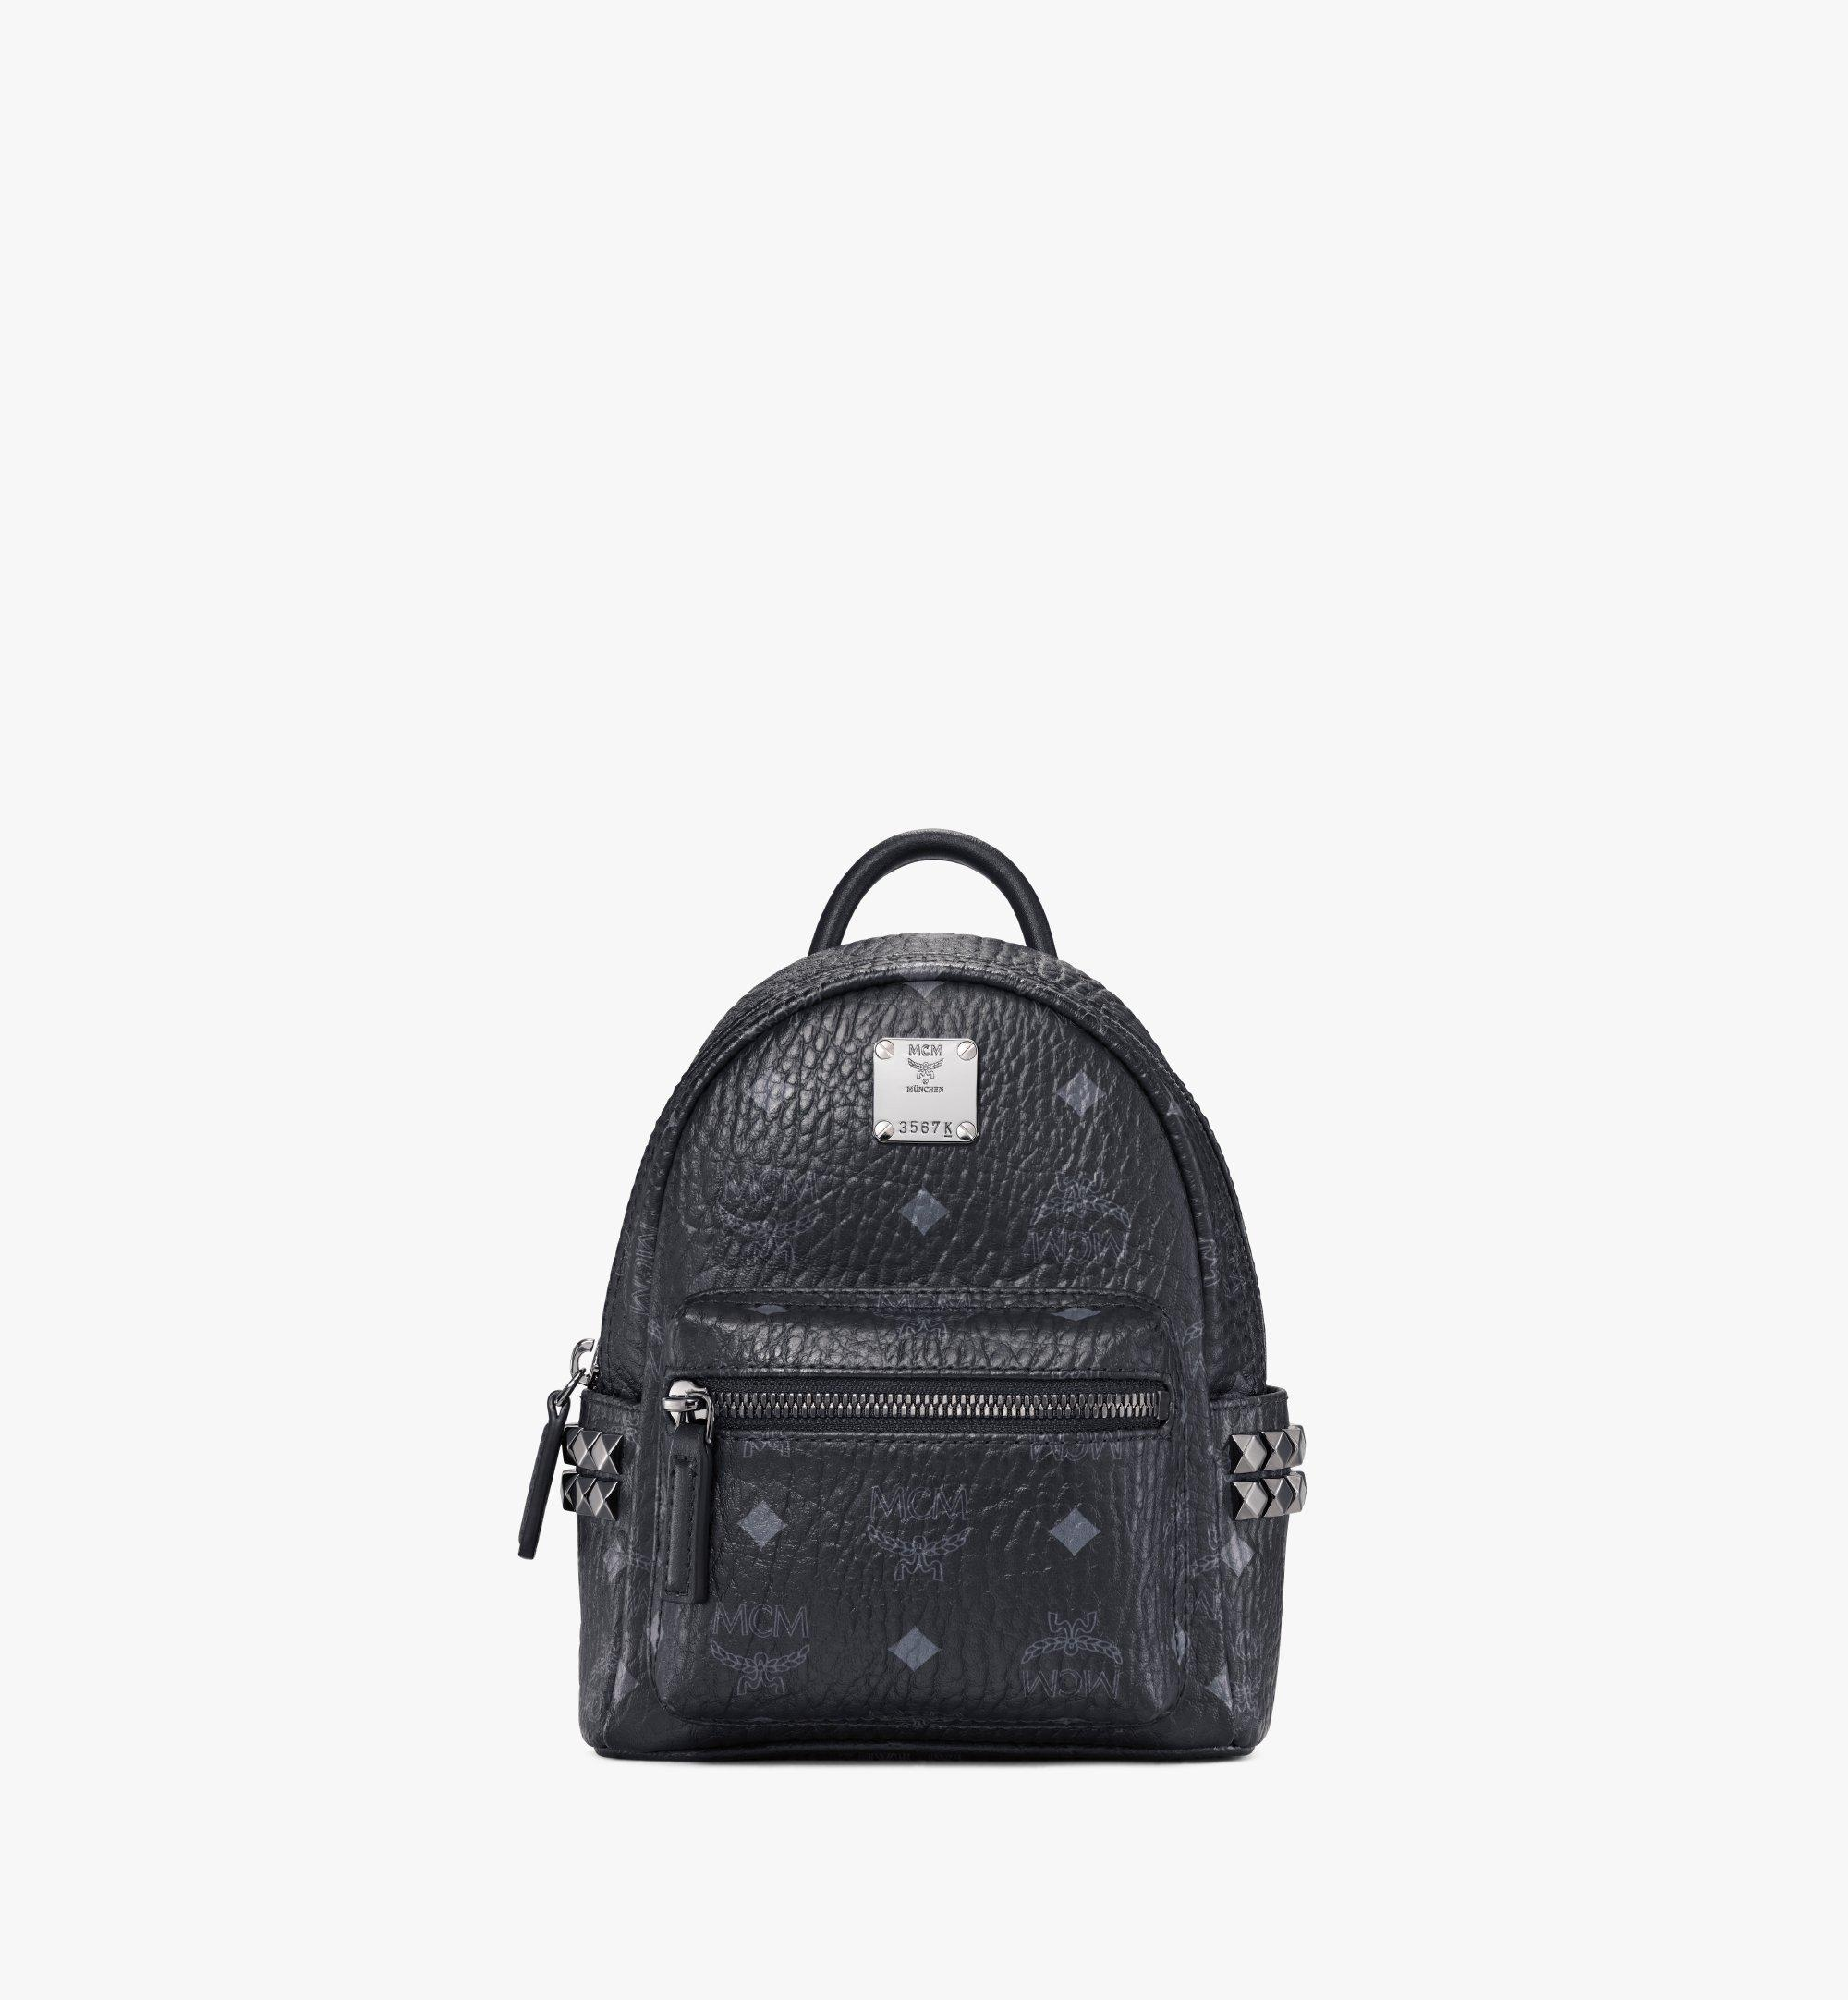 20 cm 8 in Stark Side Studs Bebe Boo Rucksack in Visetos